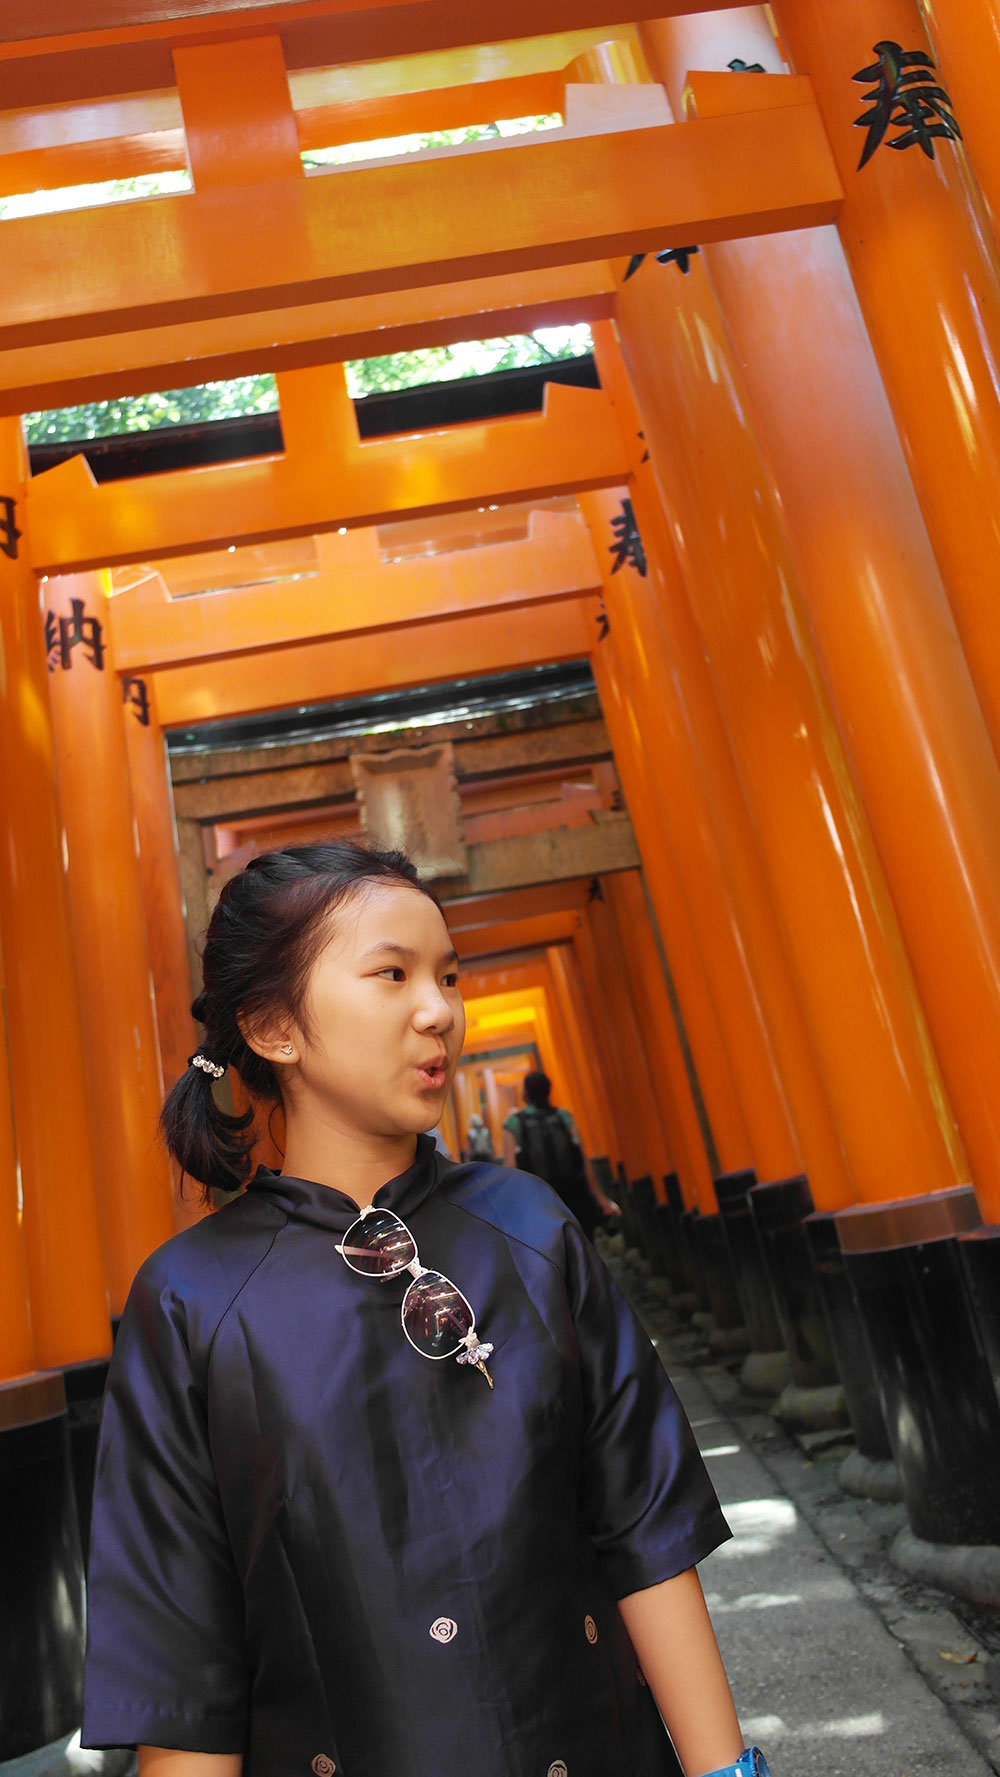 Fushimi-Inari-Shrine-78